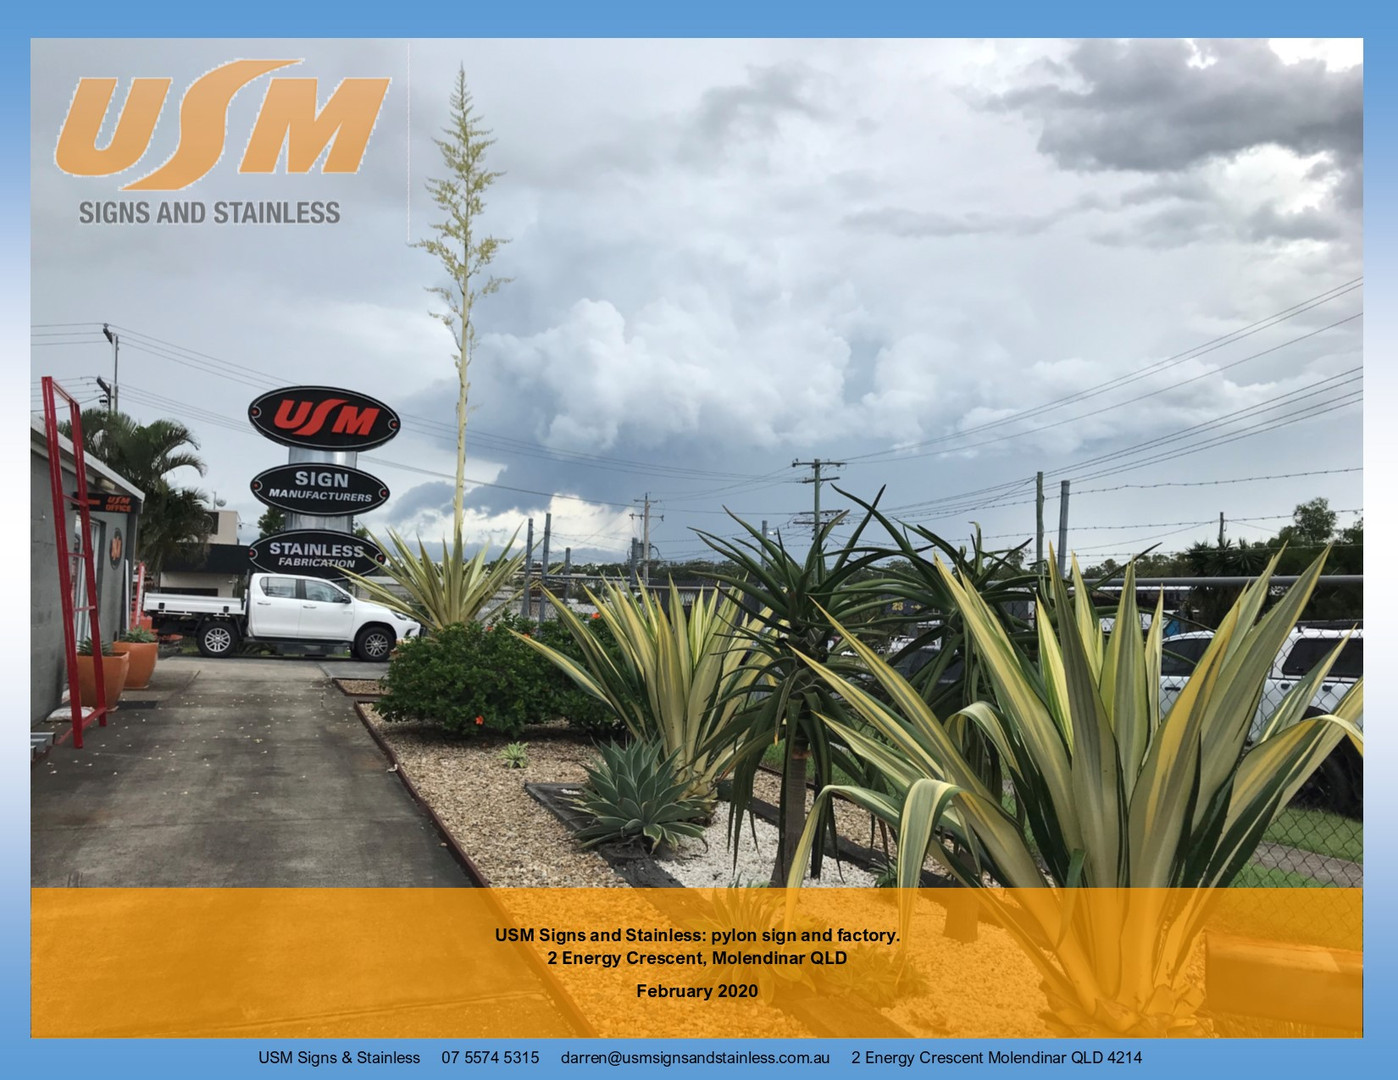 USM Signs & Stainless pylon sign